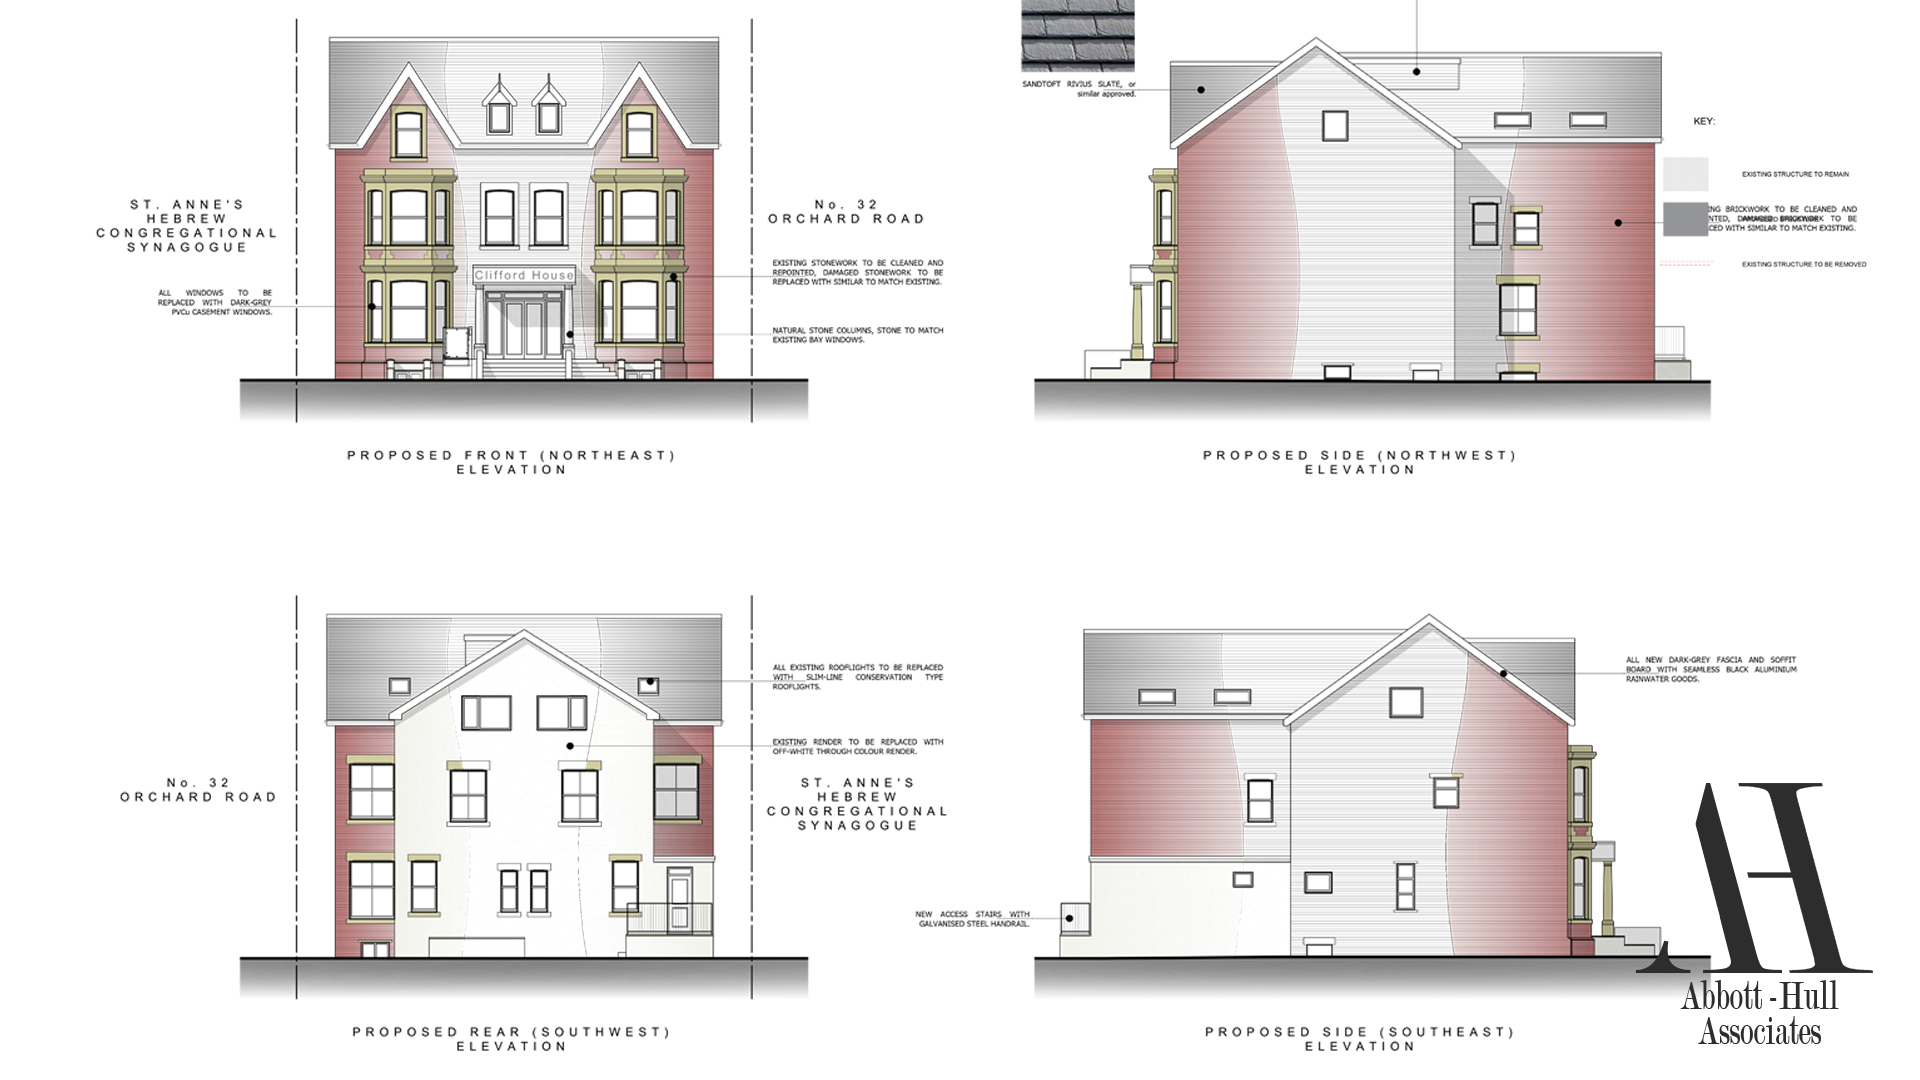 Orchard Road, Lytham St. Annes Proposed Elevations